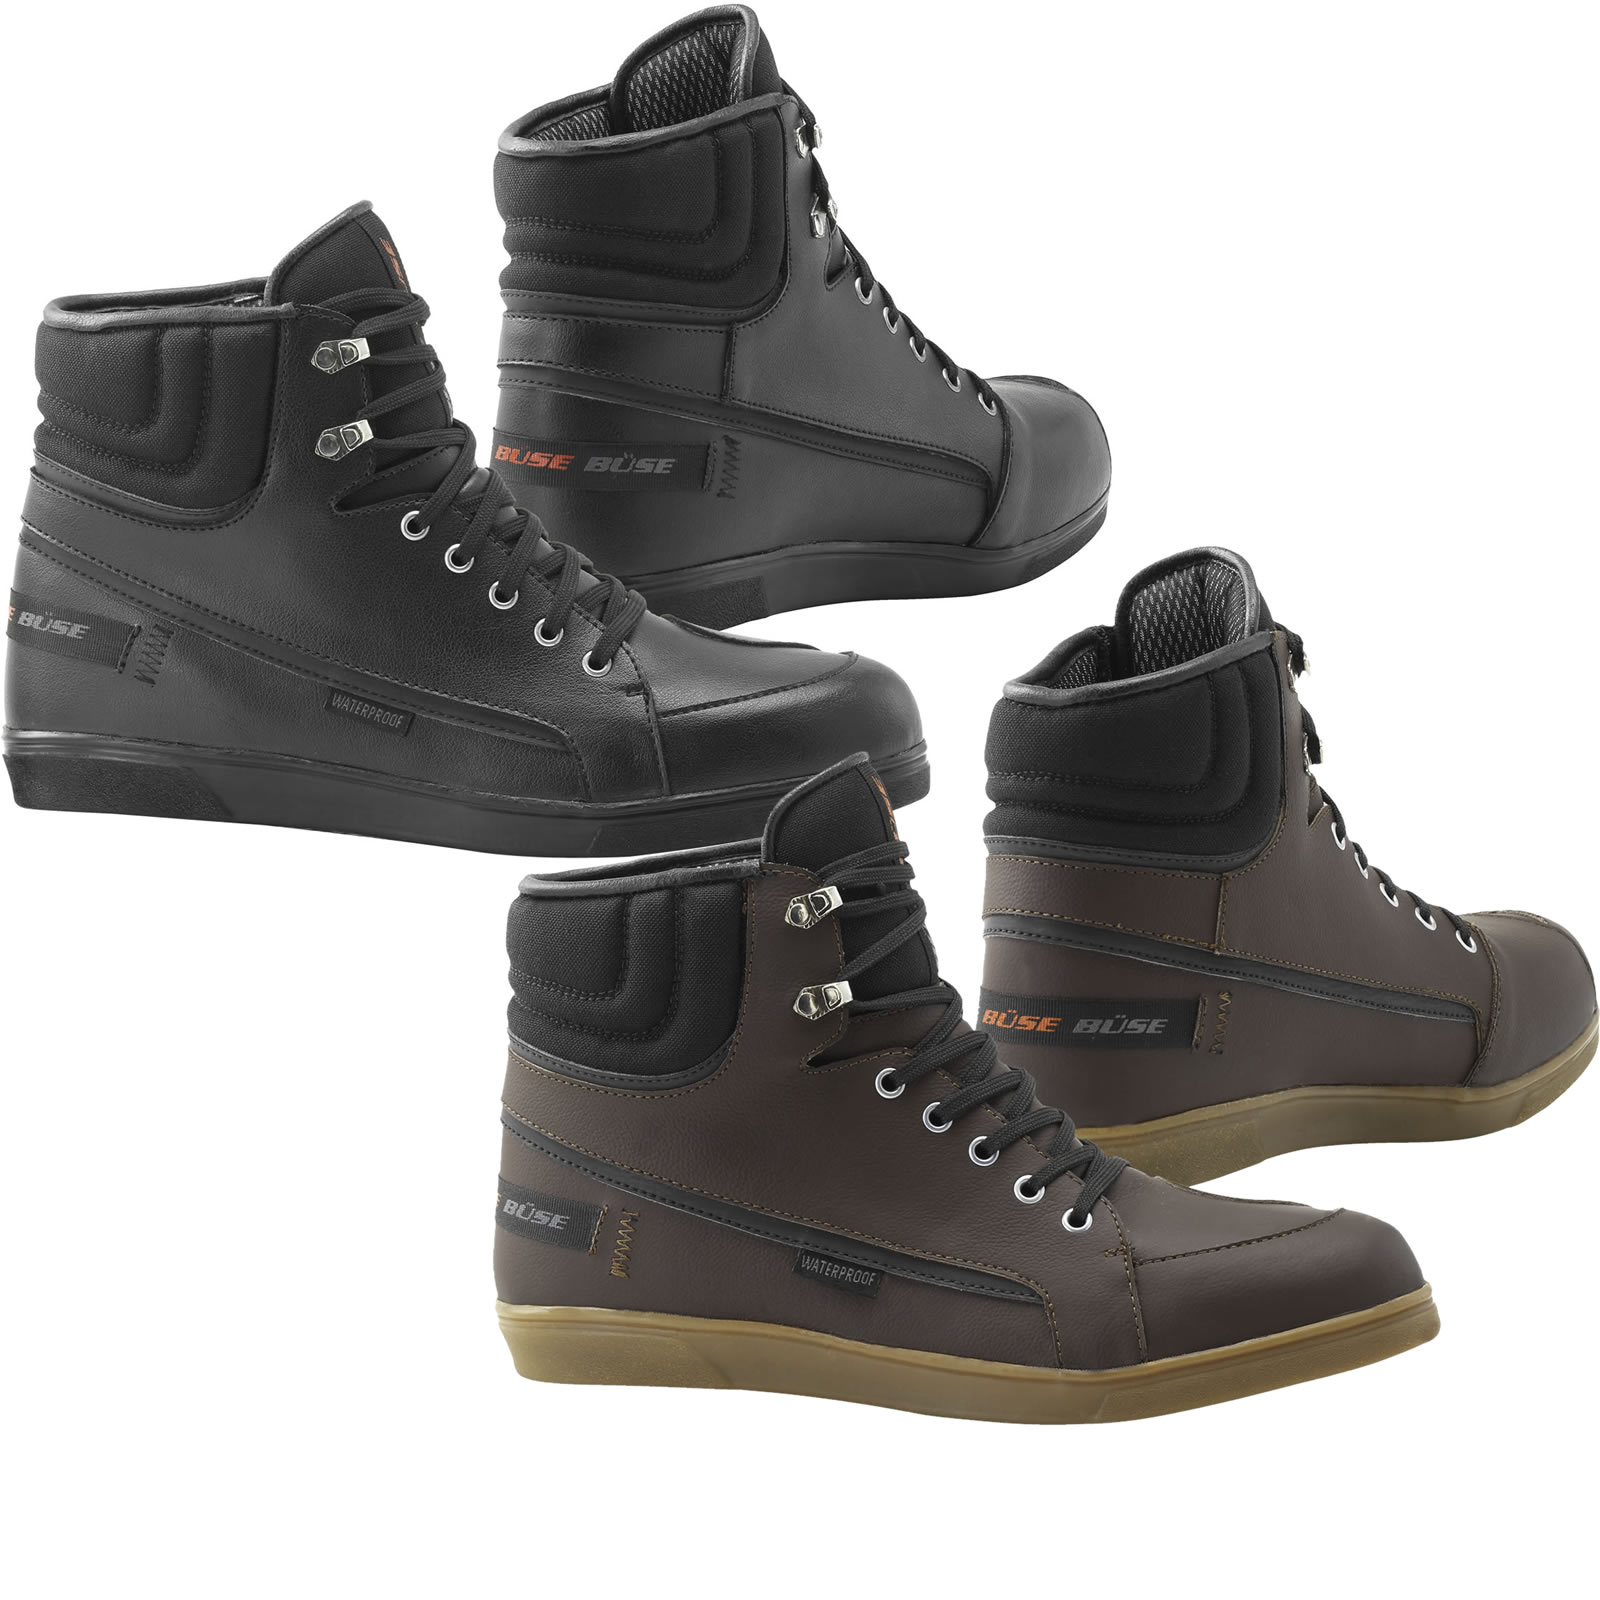 Buse B52 Motorcycle Boots - Clearance - Ghostbikes.com